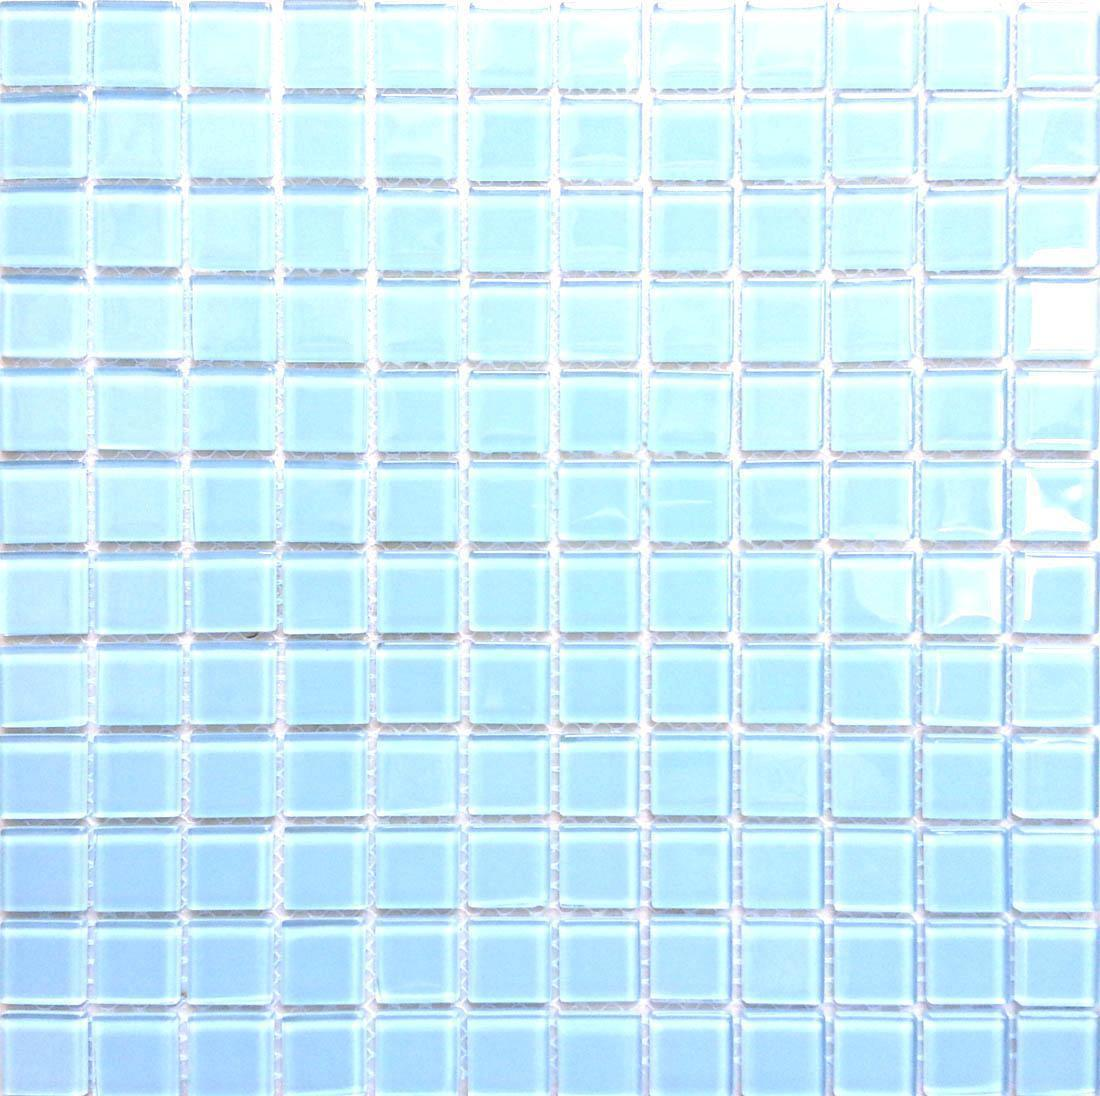 1 SQ M Blau Glass Bathroom Kitchen Bathroom Shower Mosaic Wall Tiles MT0009